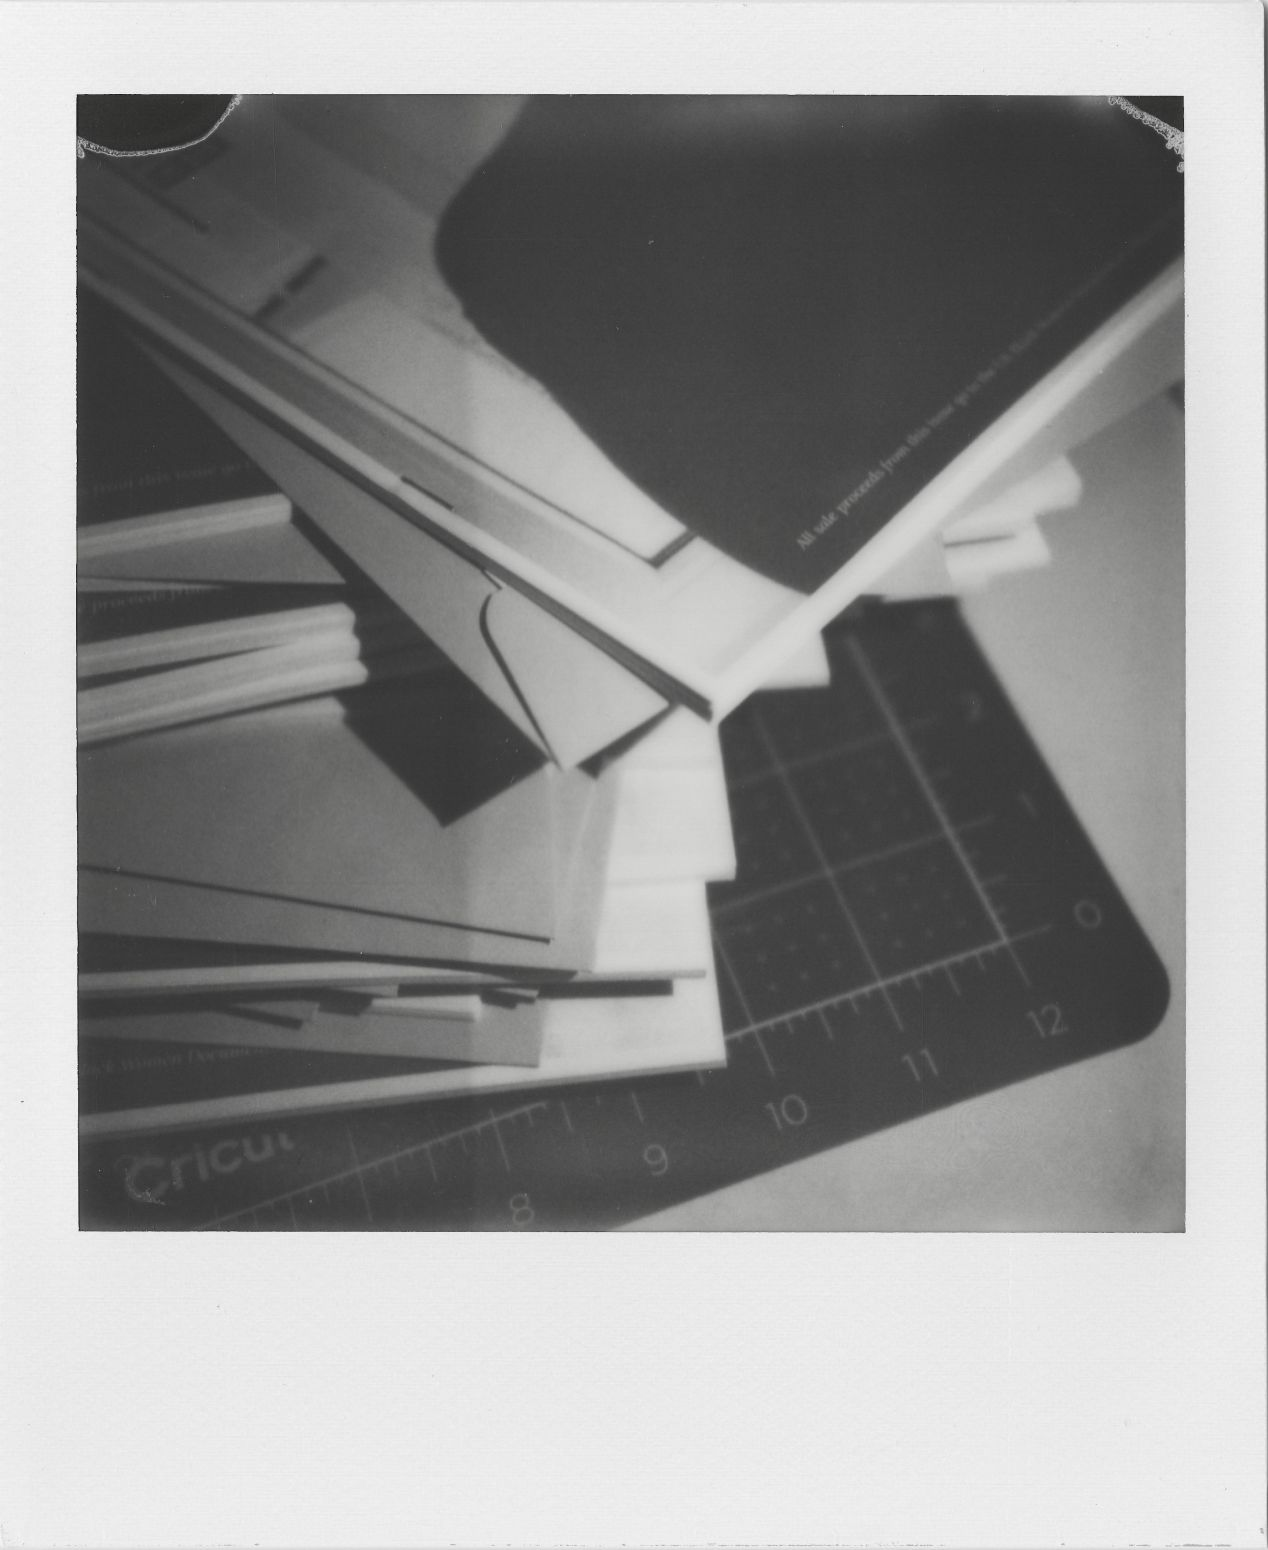 A stack of stapled magazines with perfectly-stacked paper for that nice, flush edge.